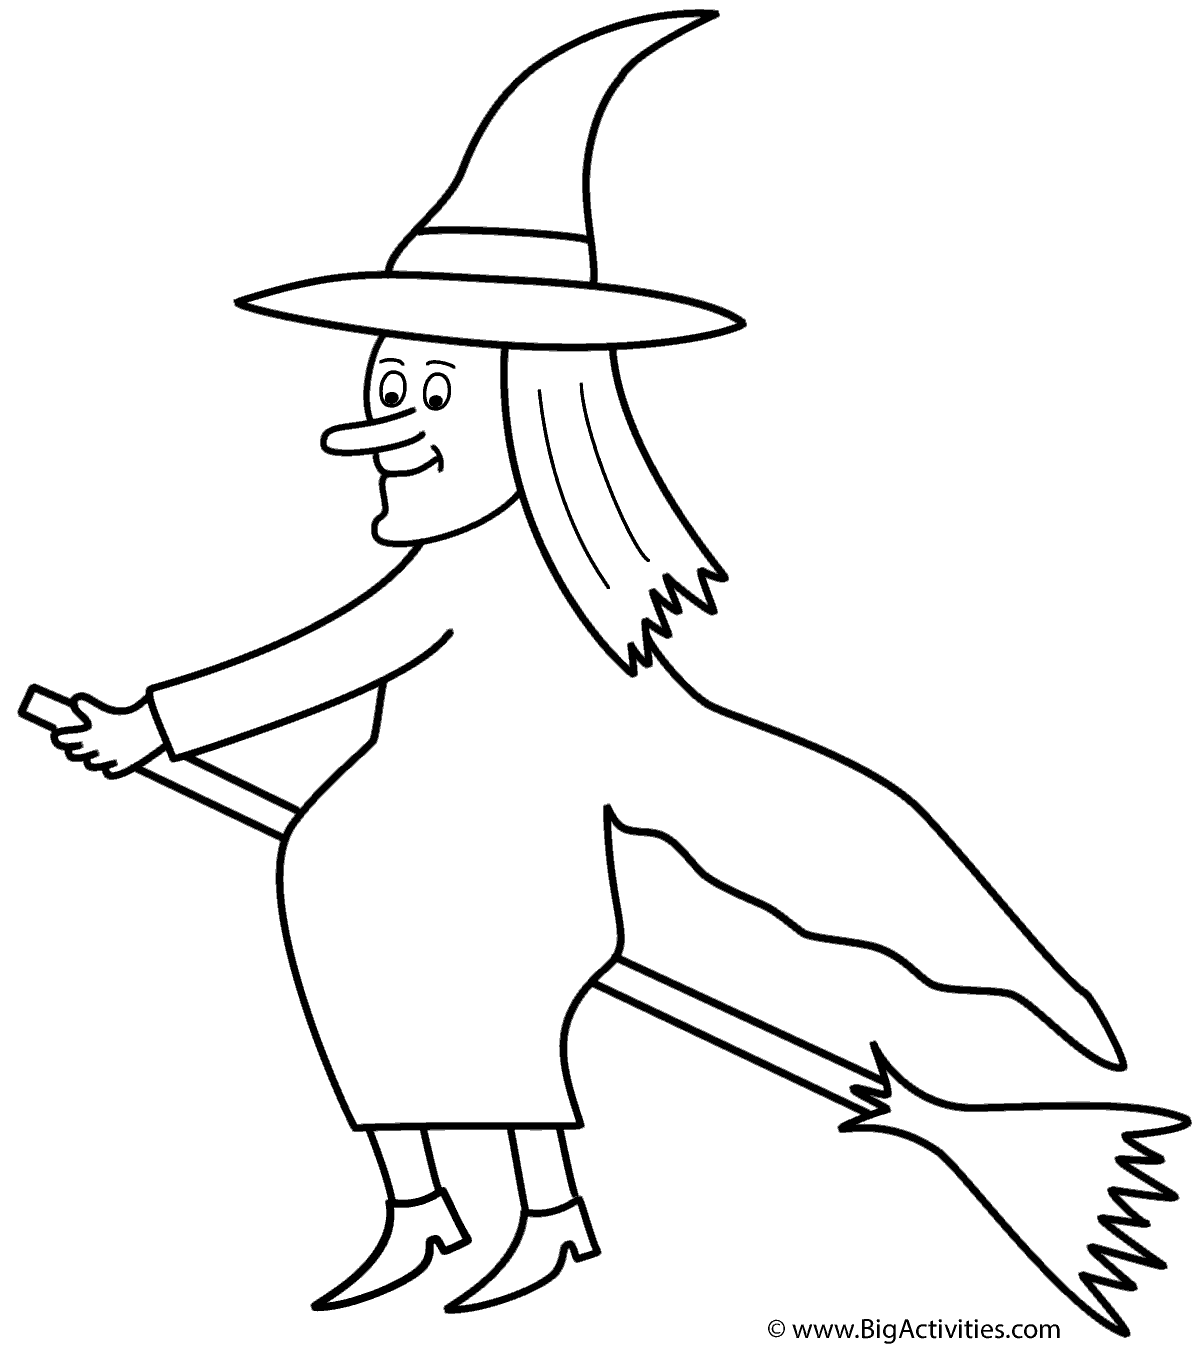 coloring printable witch 30 free witch coloring pages printable coloring witch printable